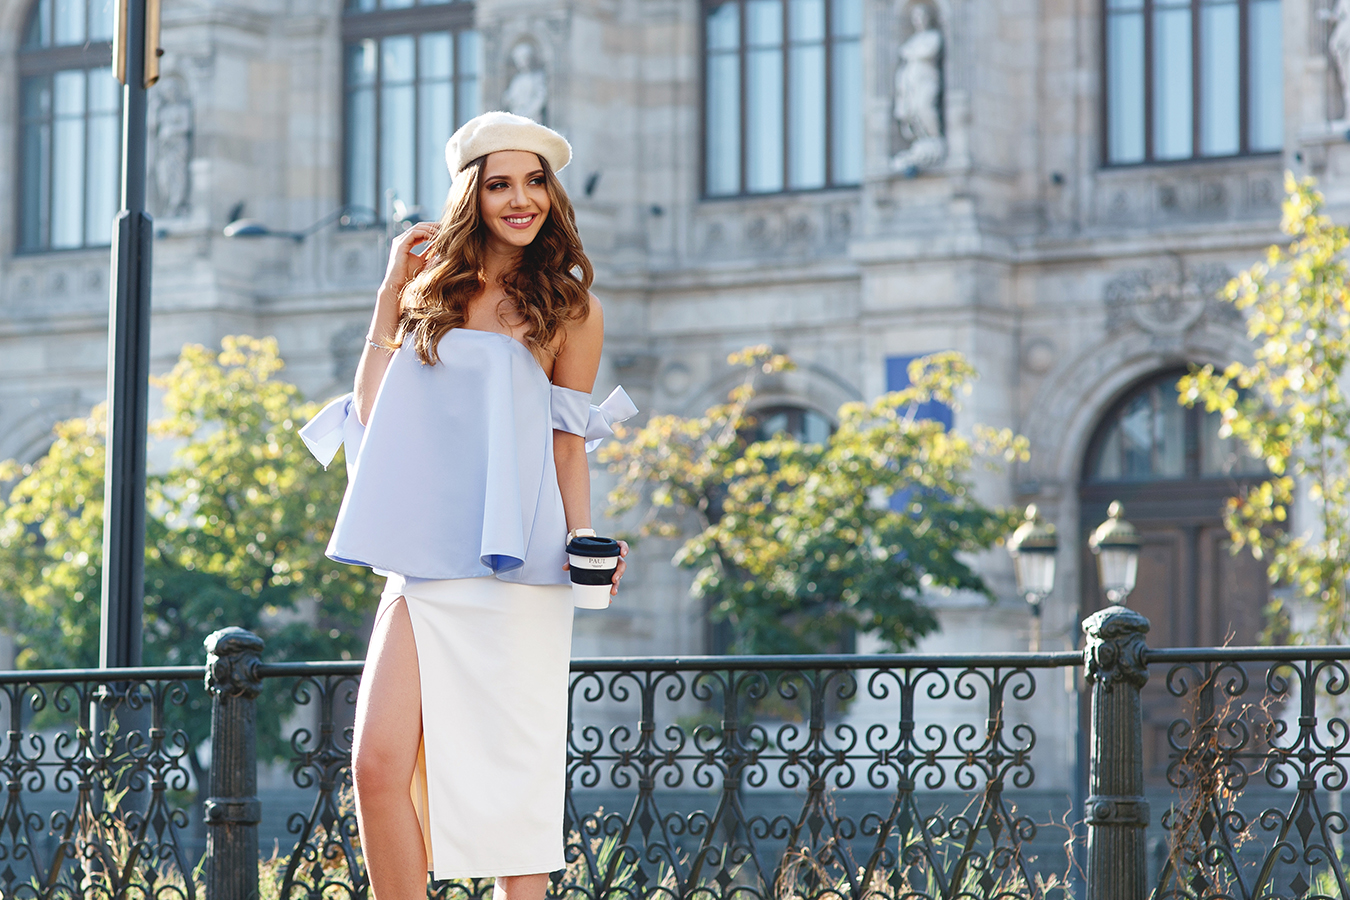 larisa costea, larisa costea blog, the mysterious girl, the mysterious girl blog, fashion blog, blogger, fashion, fashionista, it girl, travel blog, travel, traveler, ootd, lotd, outfit inspiration,look of the day,outfit of the day,what to wear, paris, little paris, french chic,french style,chicwish,chicwish top, off the shoulder top,bow sleeves,white skirt, cone skirt, beige sandals, beige beret, french beret, paul,brutariile paul, mvmt watch,white watch,bucharest